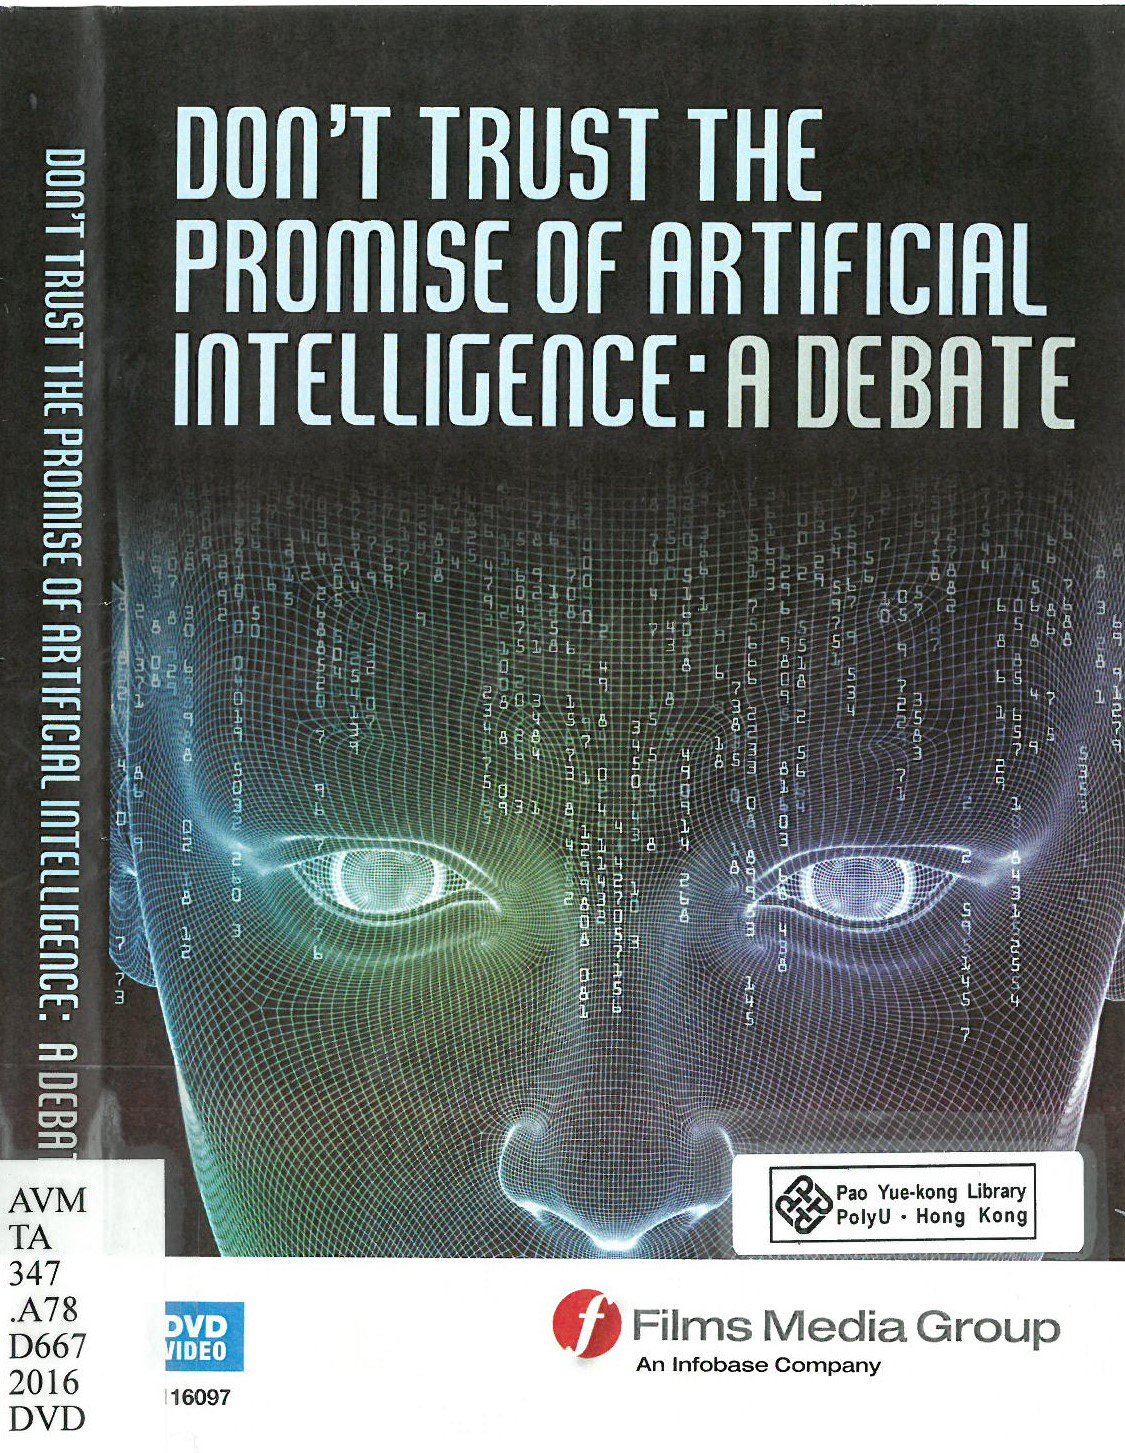 Don't trust the promise of artificial intelligence : a debate / Intelligence2